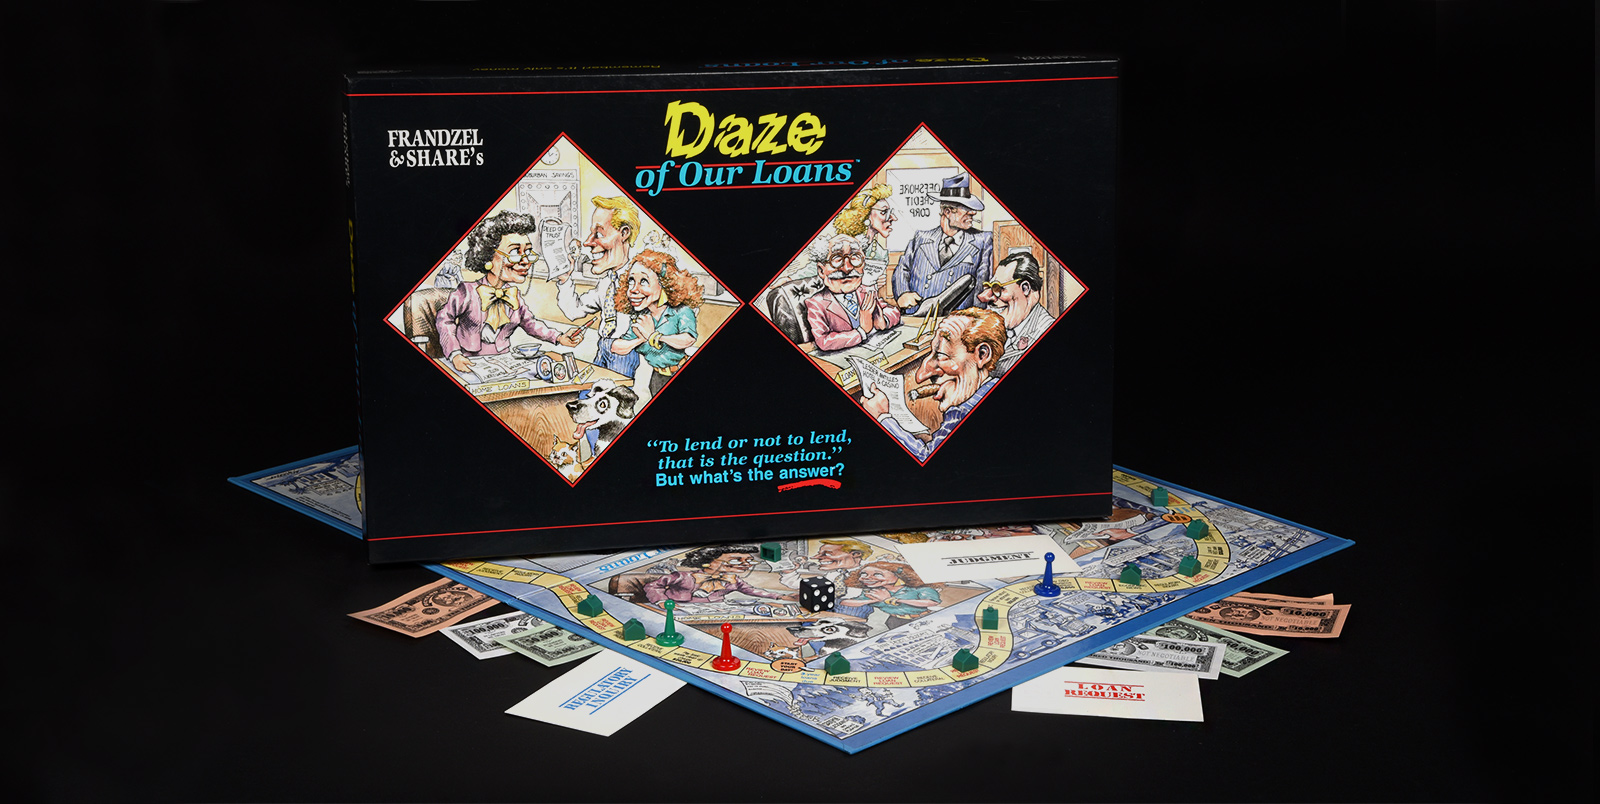 Frandzel's Daze of Our Loans board game